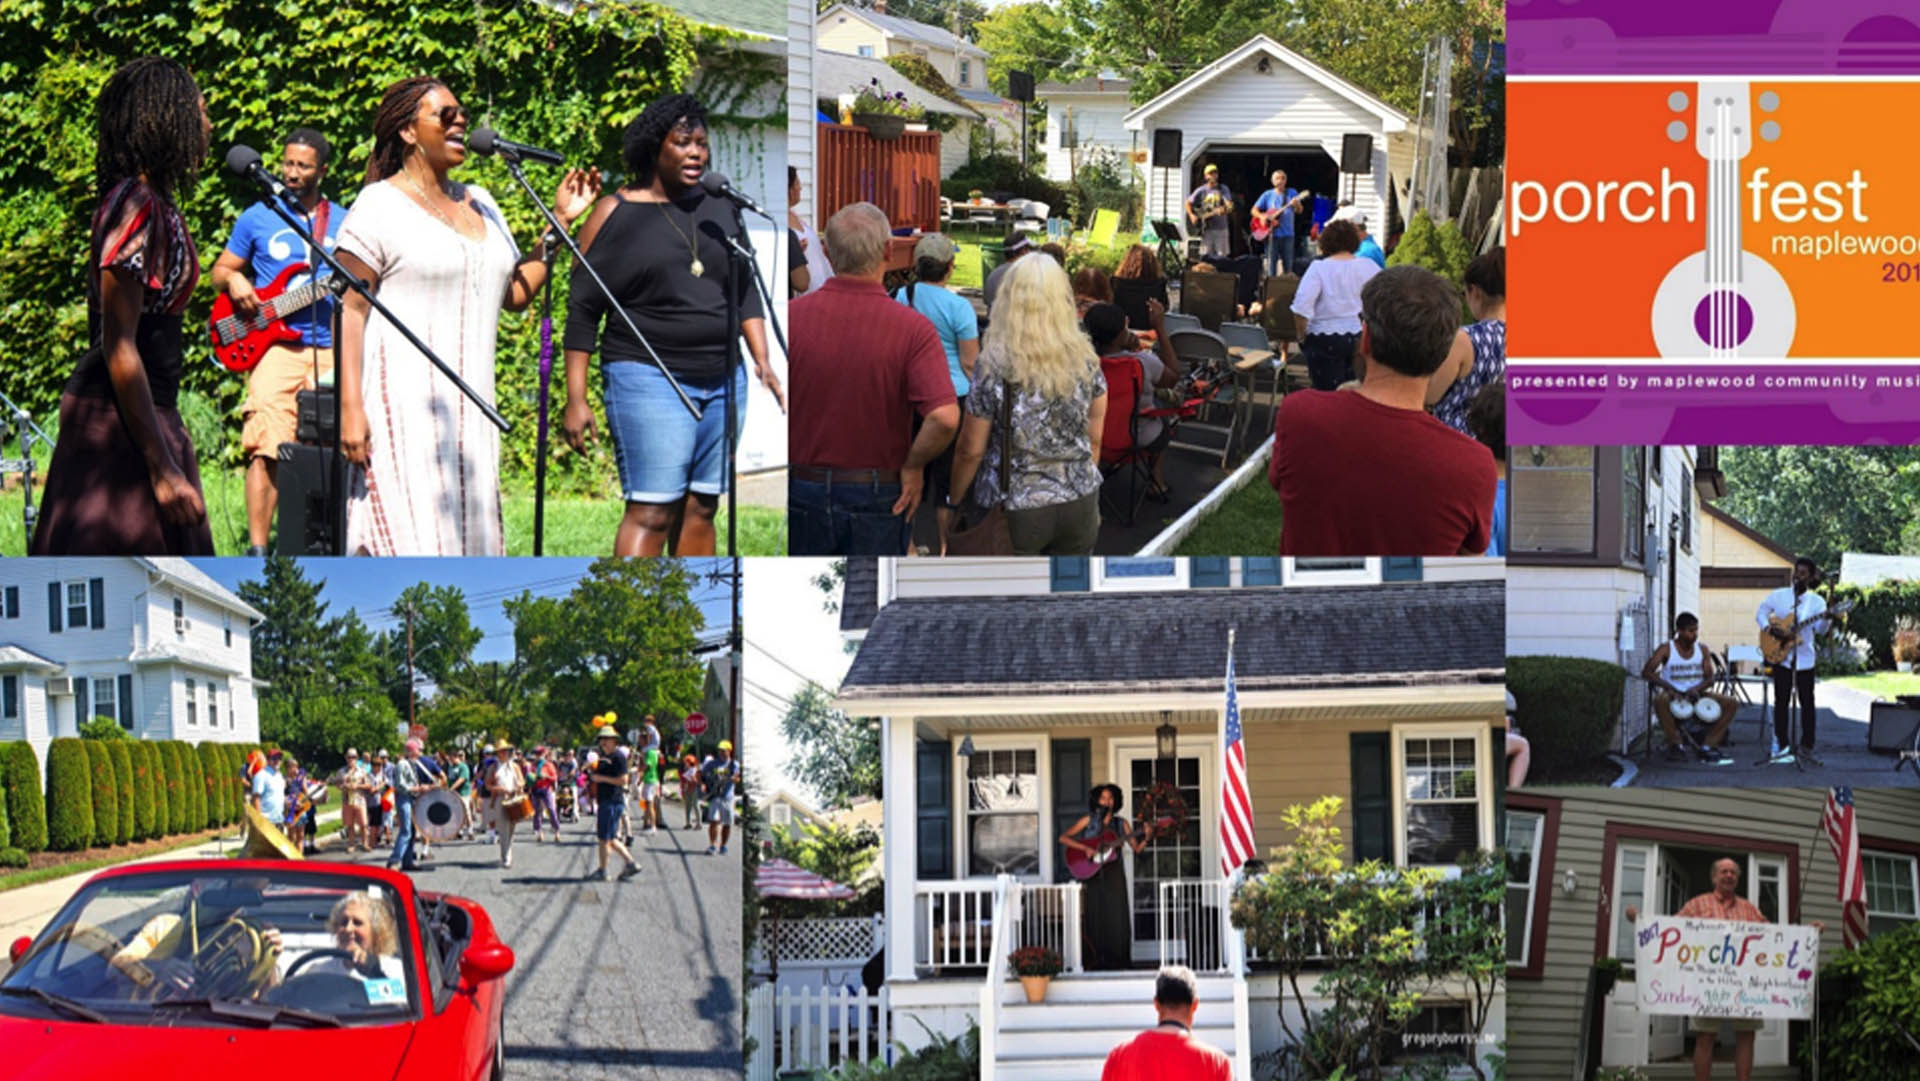 Maplewood Porch Fest collage.jpg